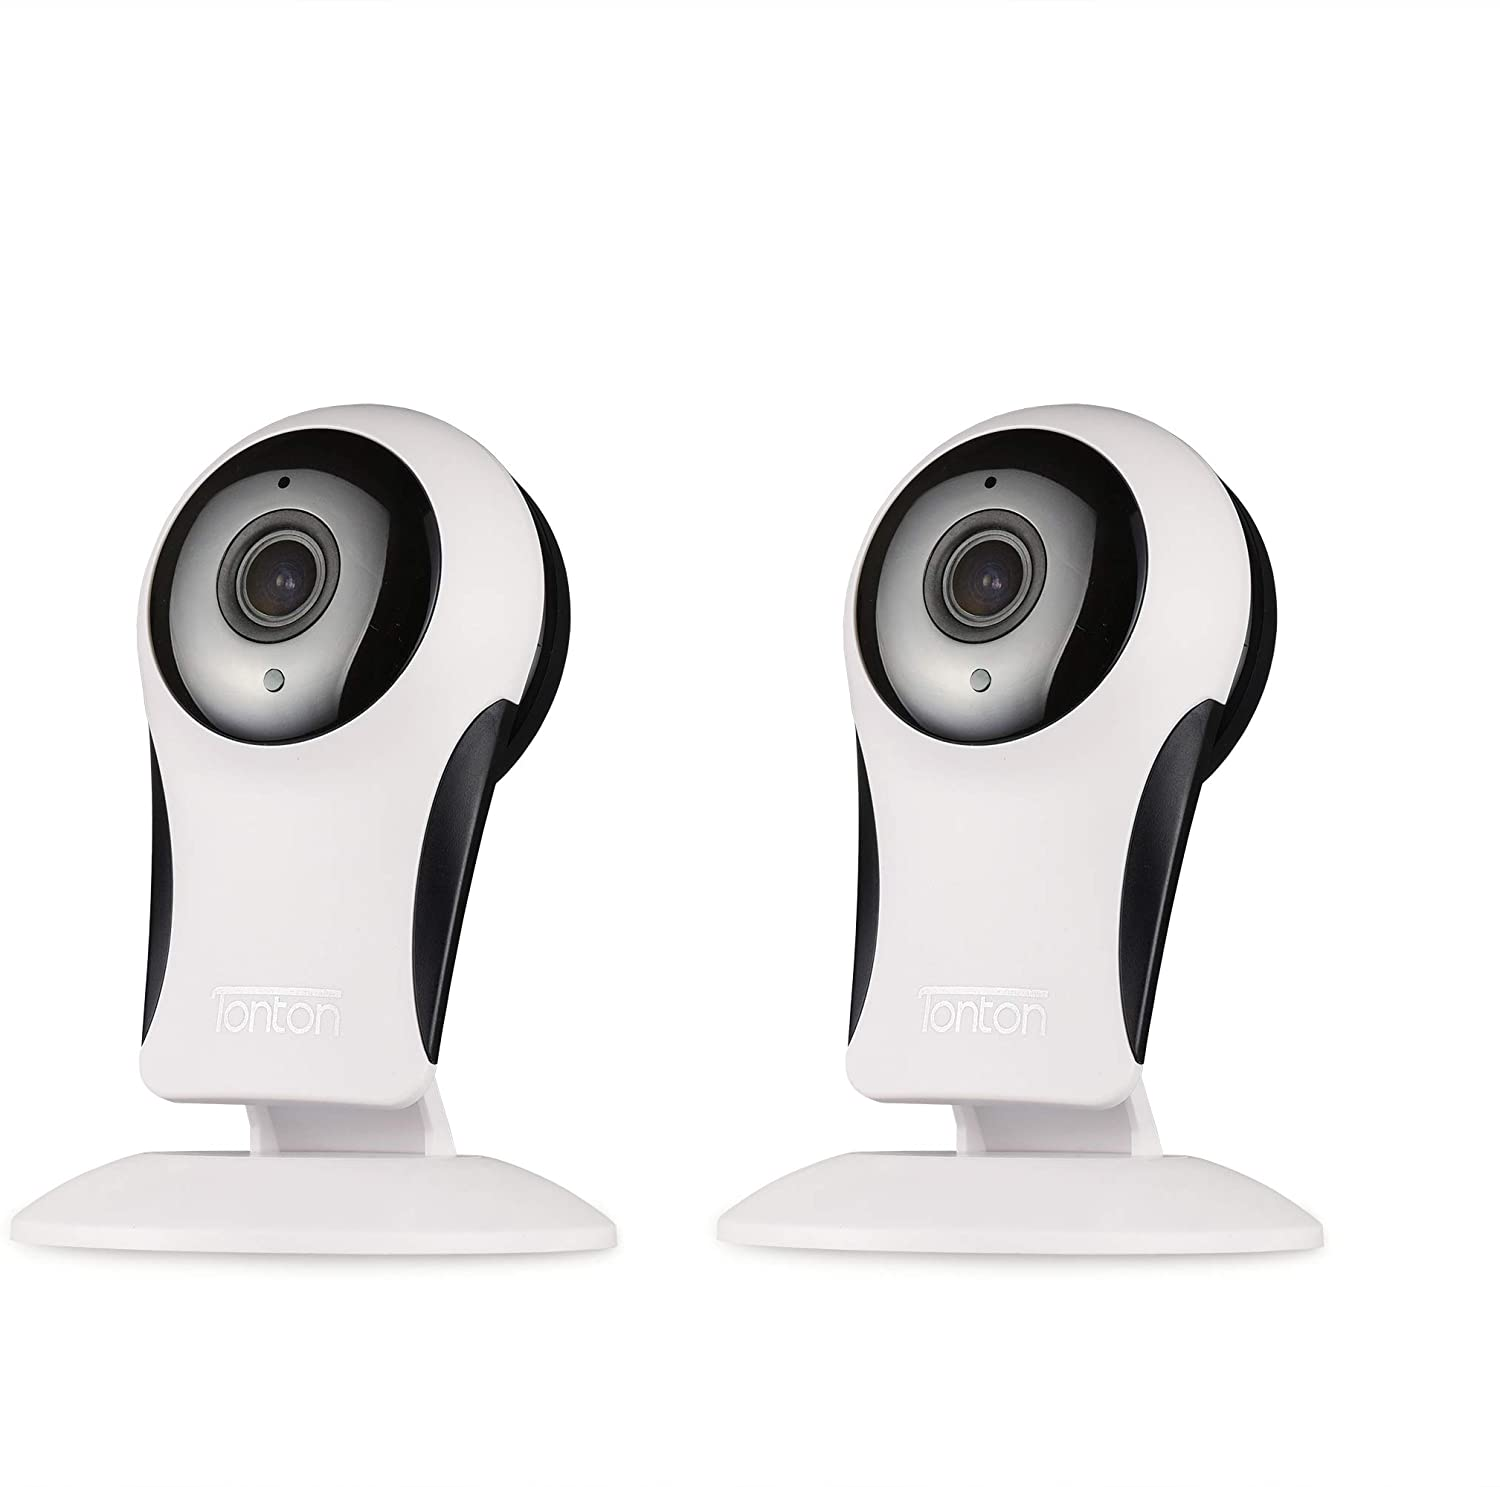 [2 Pack] Tonton 1080p Wireless Home Indoor IP Camera,2-Way Audio,Smart Motion Detection,Night Vision for Baby/Pet/Elder Monitoring,Remote Control with Free APP,Cloud Service Available